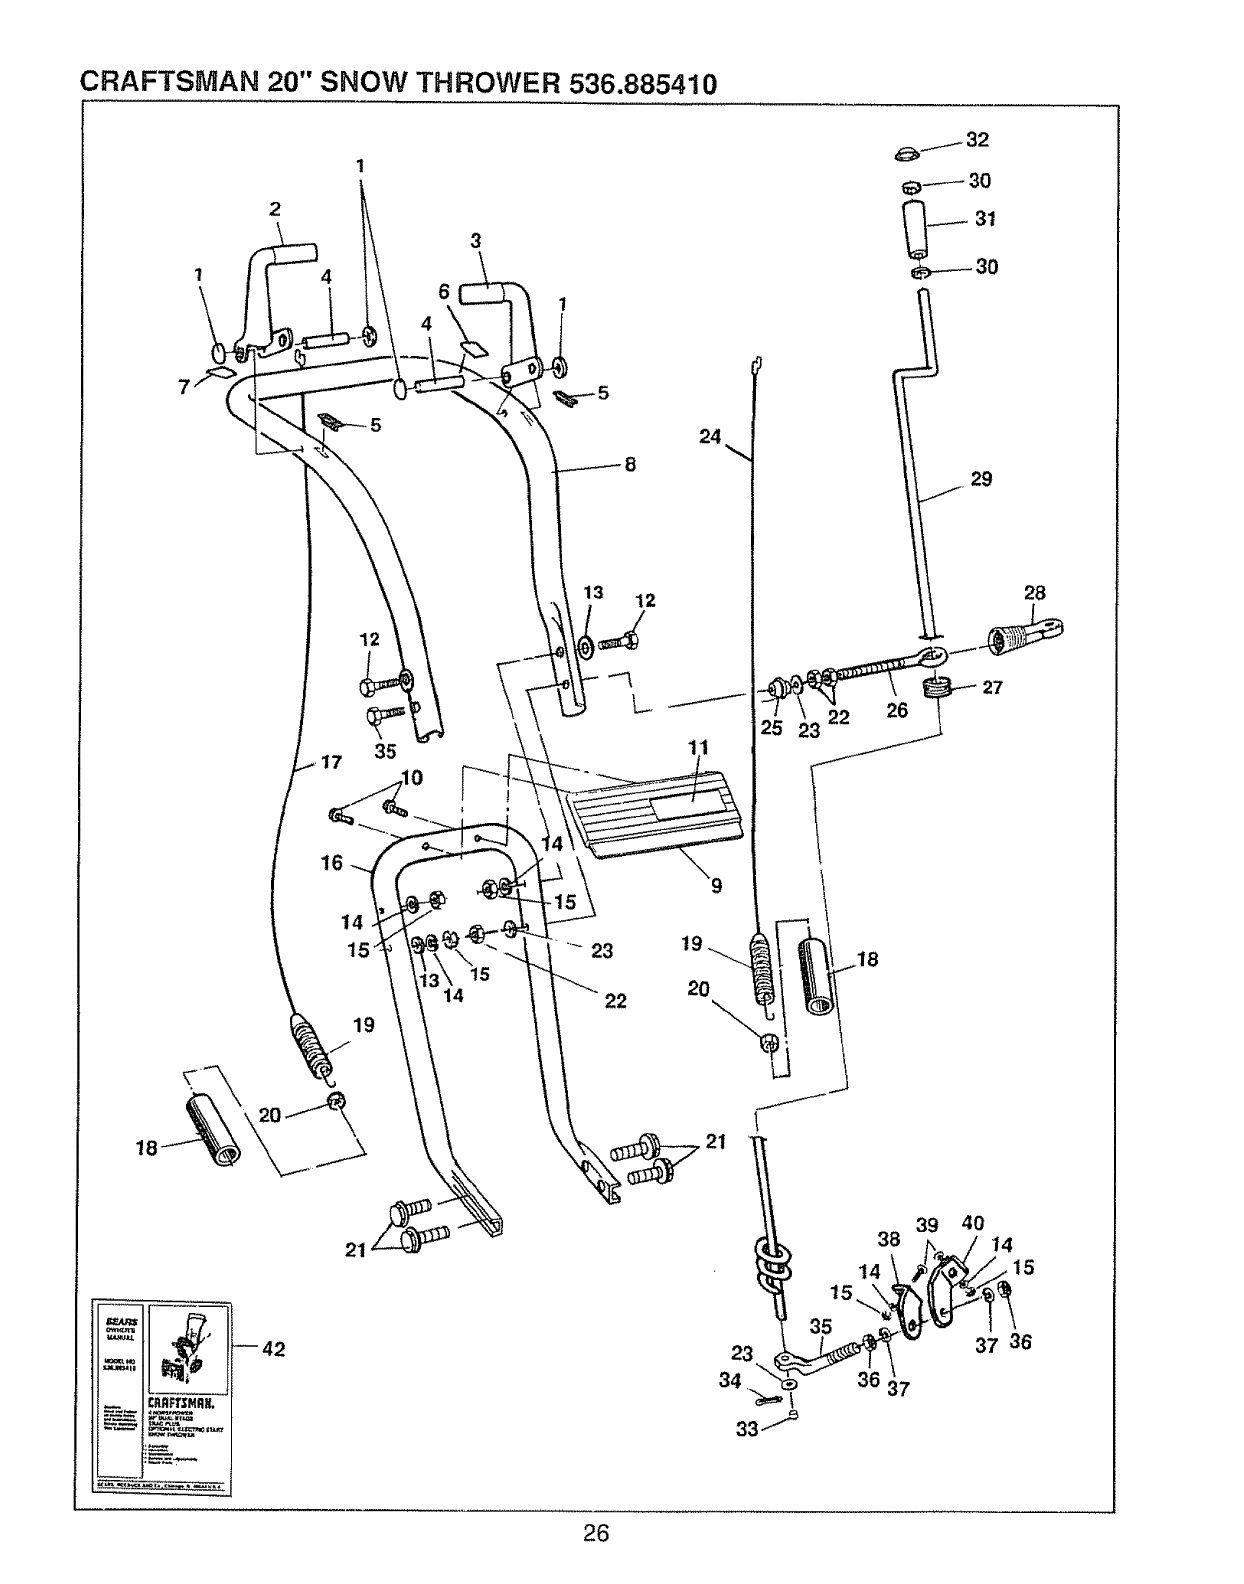 Page 26 of Sears Snow Blower 536.885410 User Guide